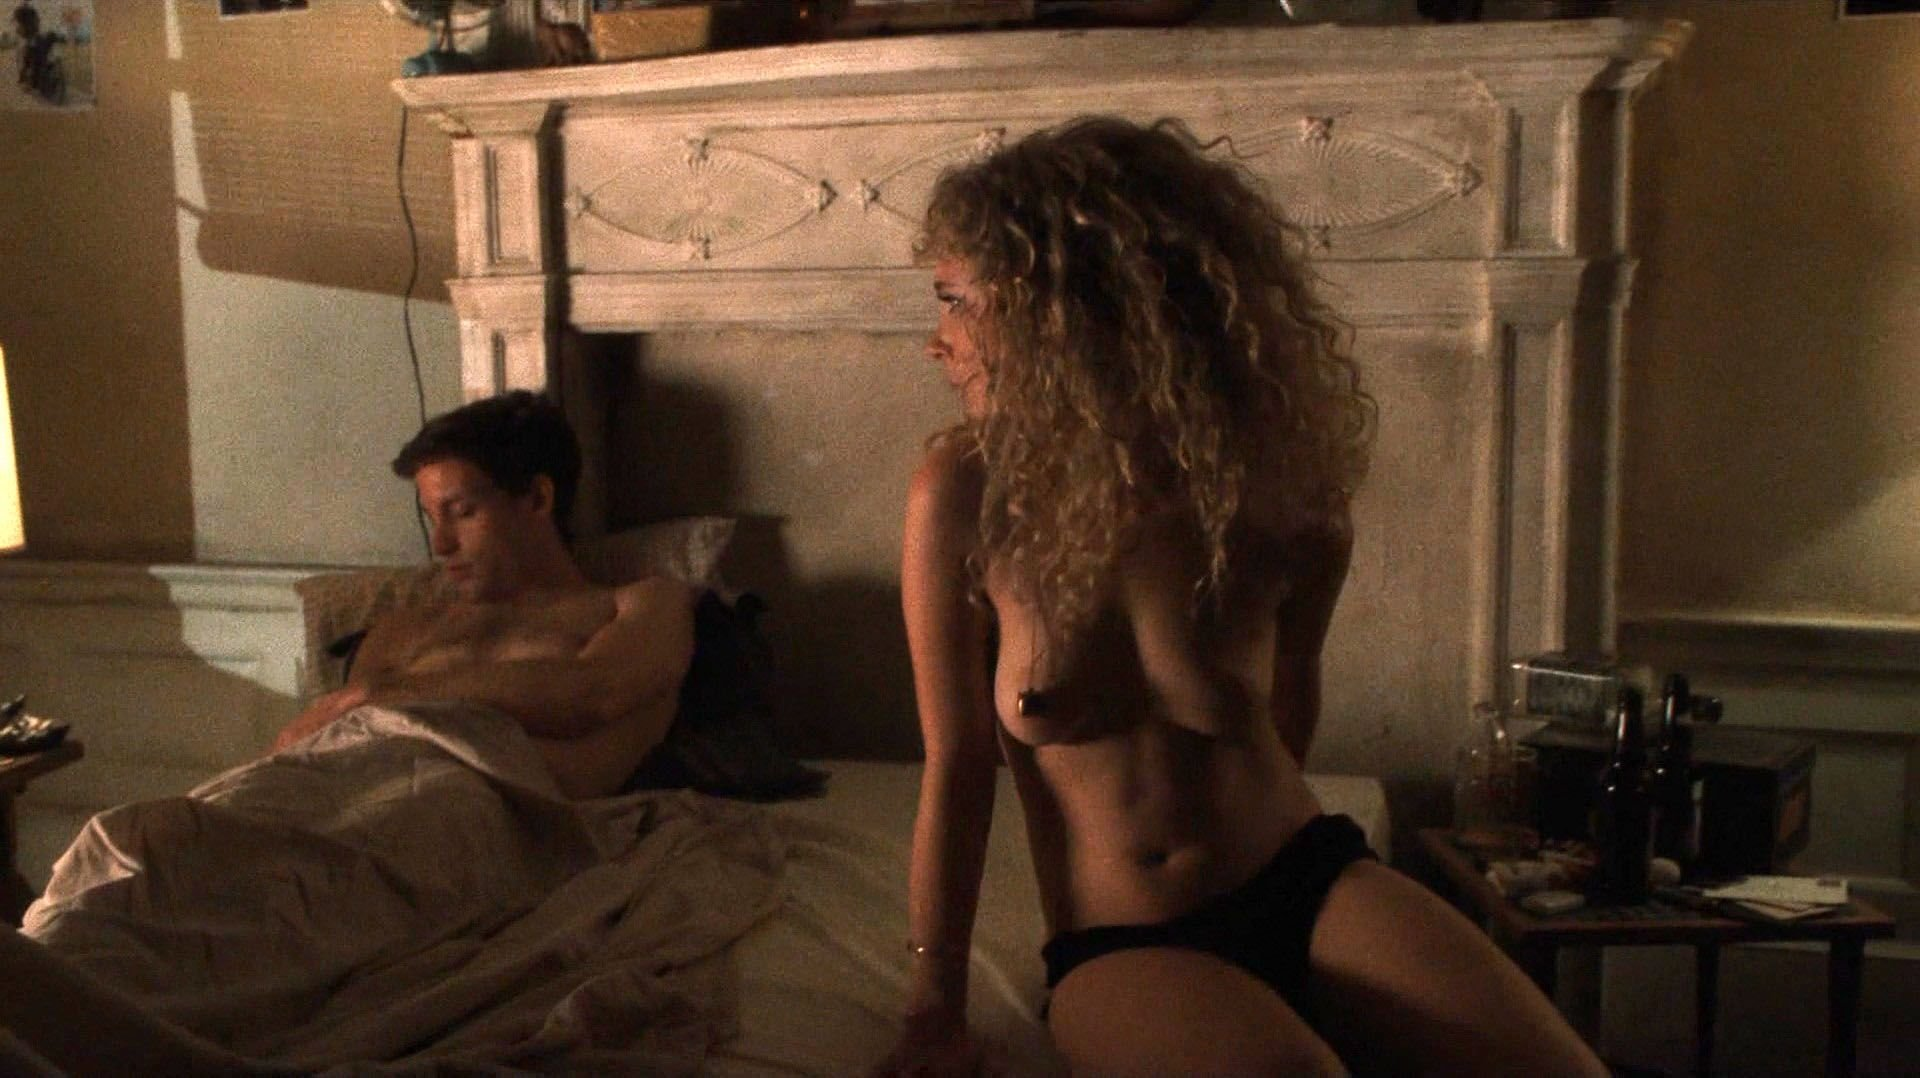 image Juno temple sex scene afternoon delight hd